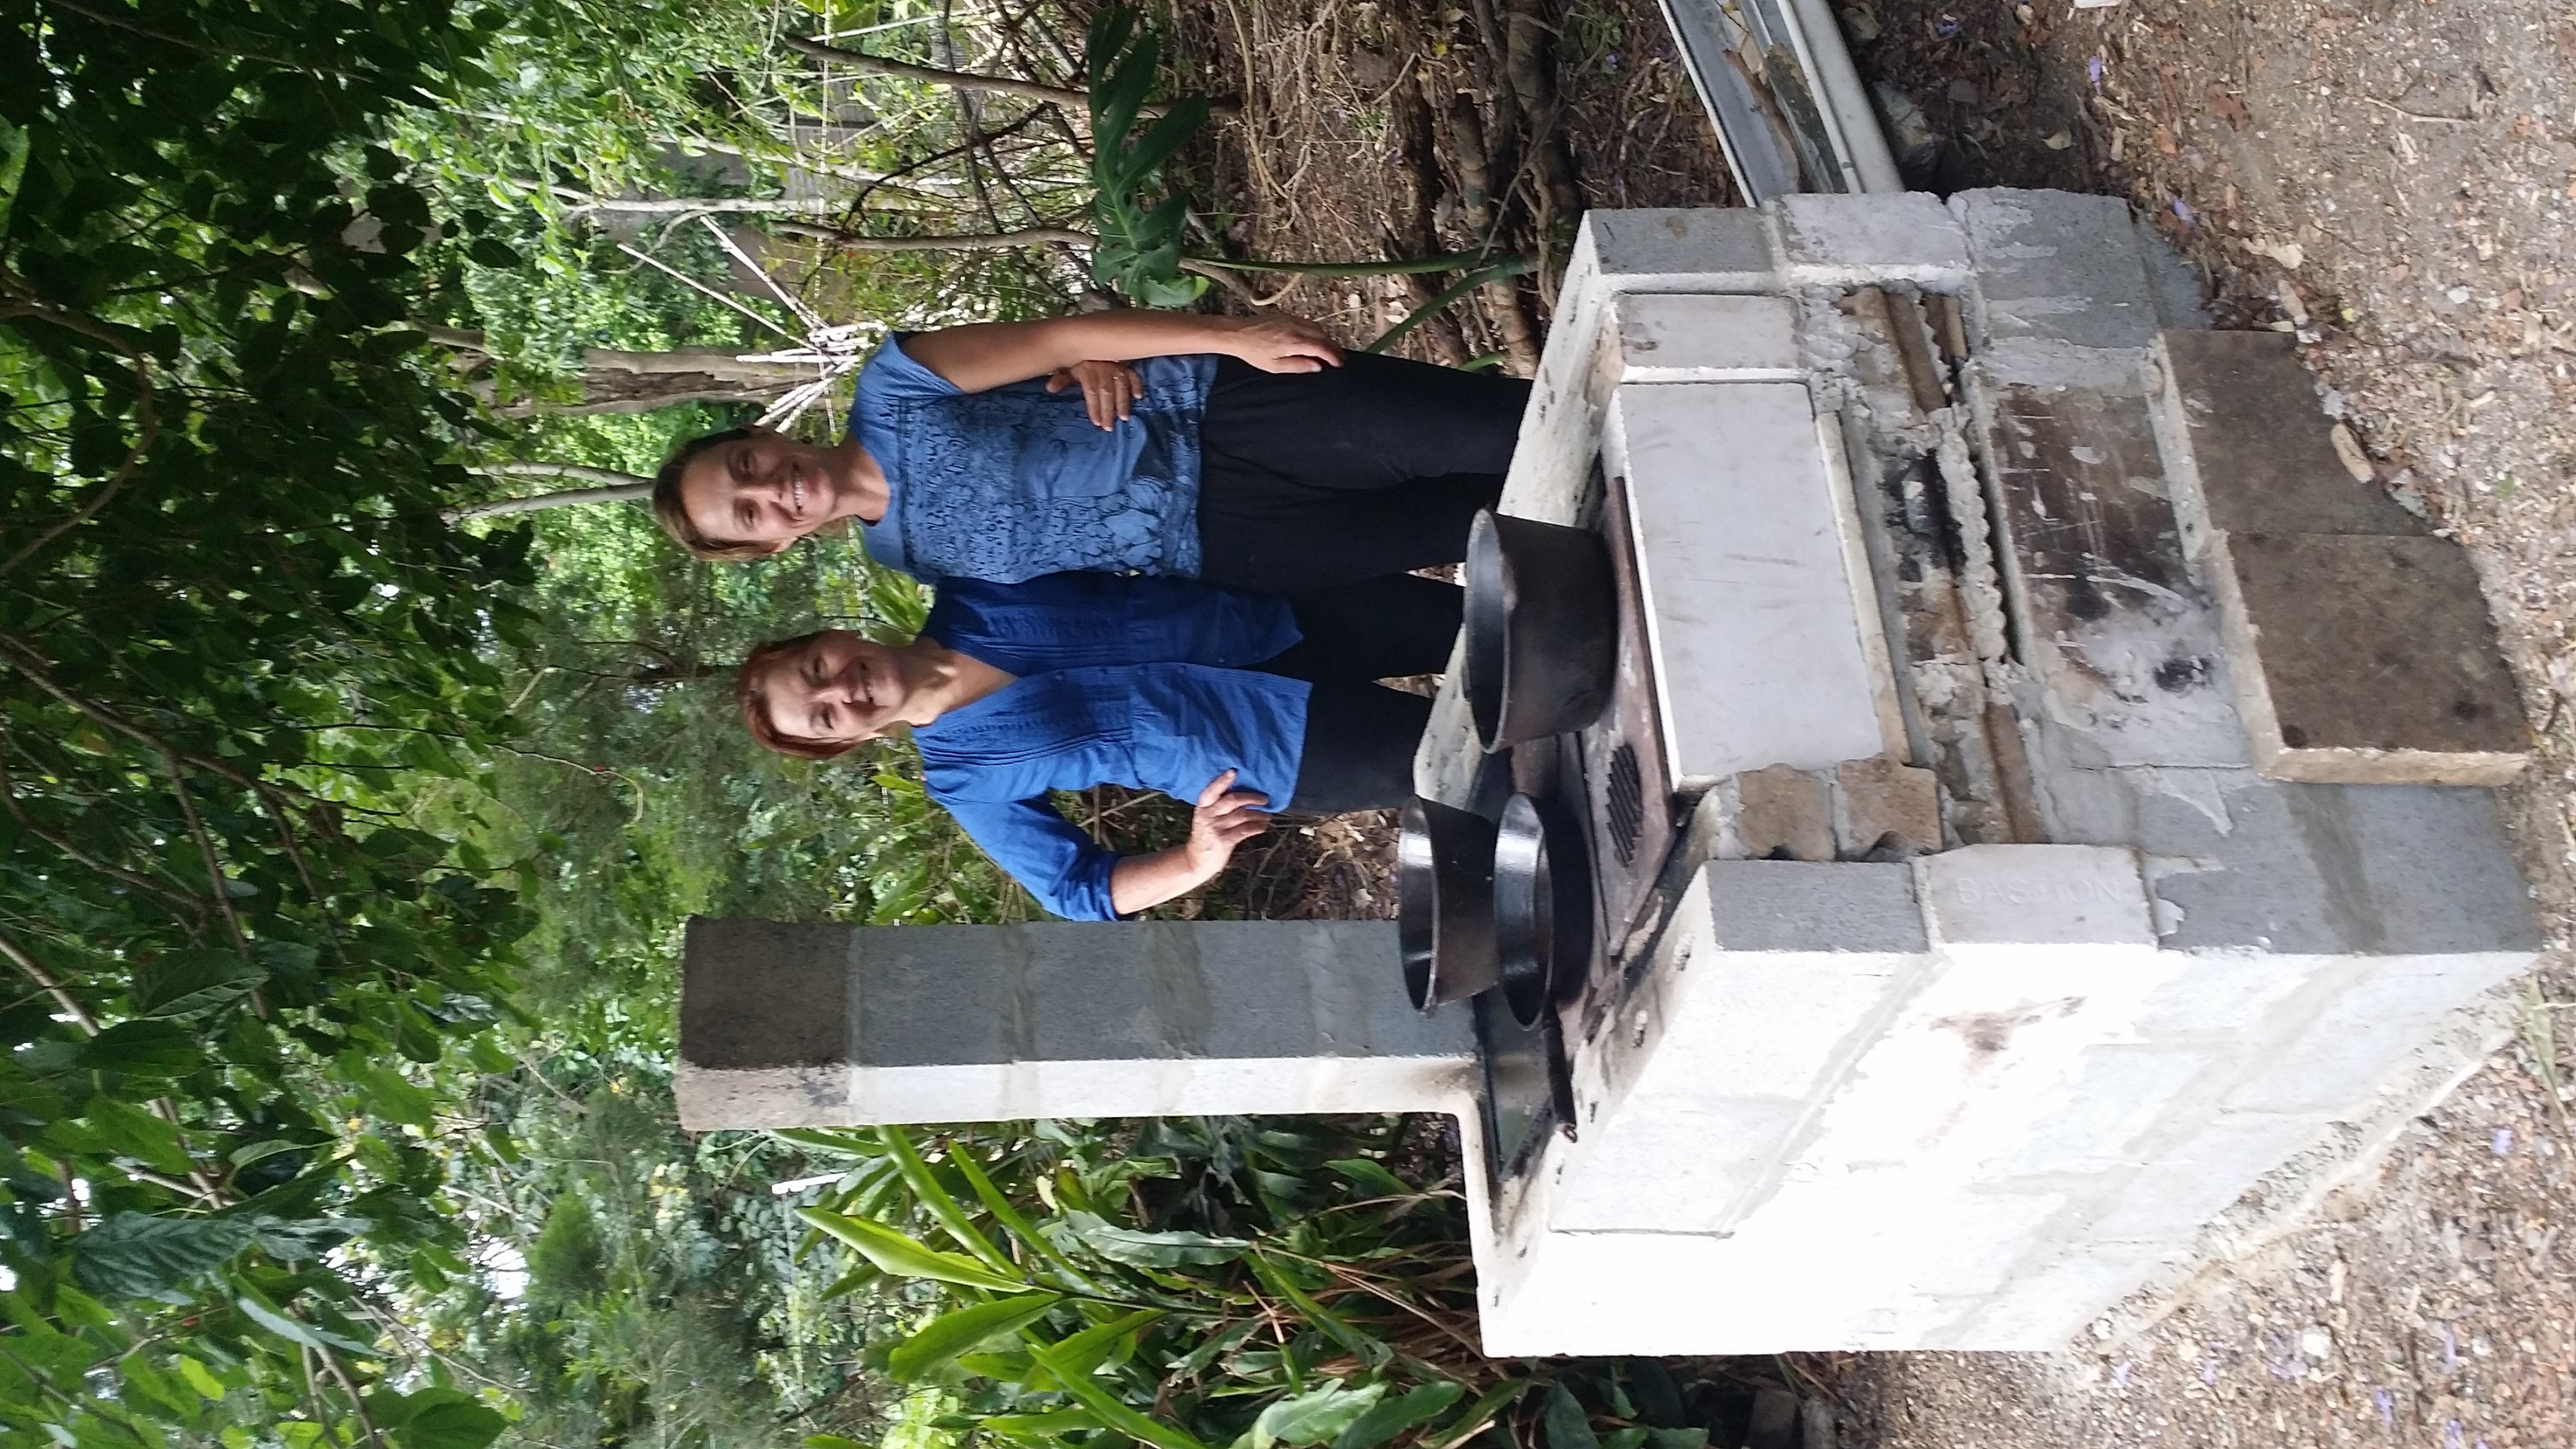 Long Lunch from New Hybrid-Rocket Stove – Permaculture